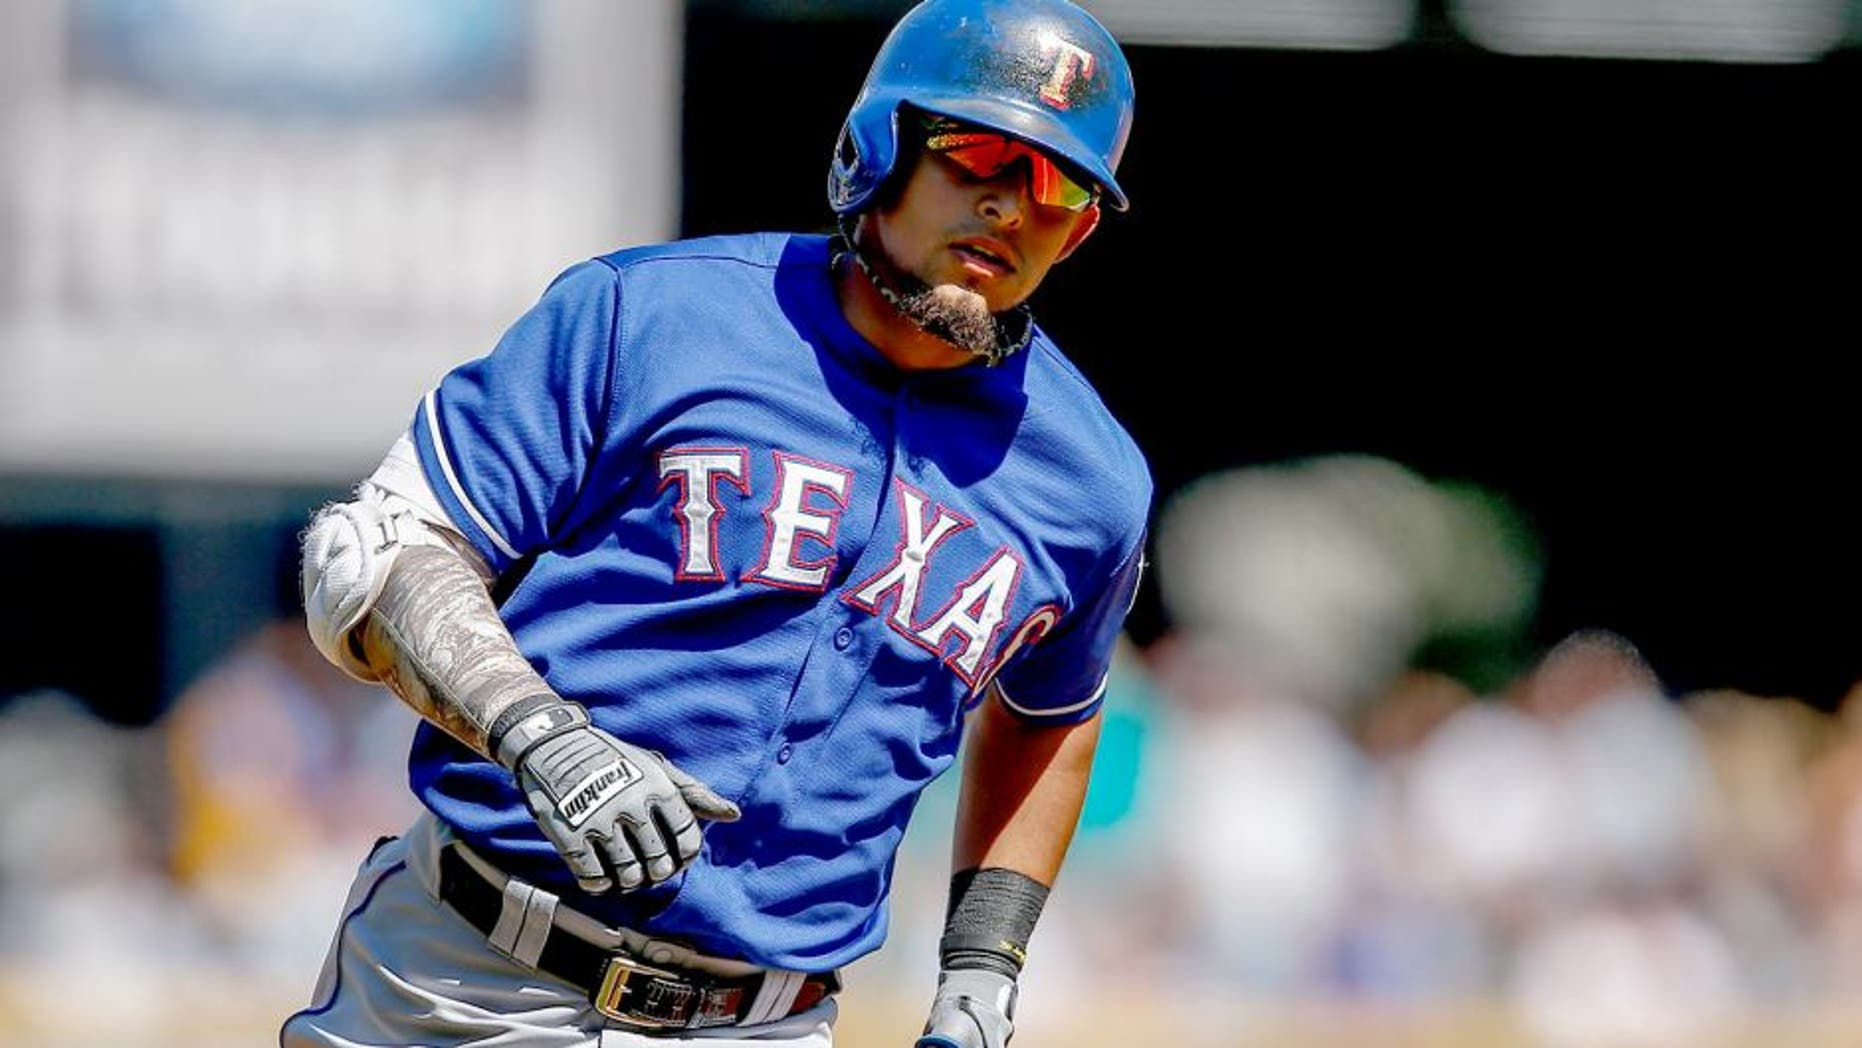 SEATTLE, WA - AUGUST 27: Rougned Odor #12 of the Texas Rangers rounds the bases after hitting a grand slam in the third inning against the Seattle Mariners at Safeco Field on August 27, 2014 in Seattle, Washington. The Rangers defeated the Mariners 12-4. (Photo by Otto Greule Jr/Getty Images)